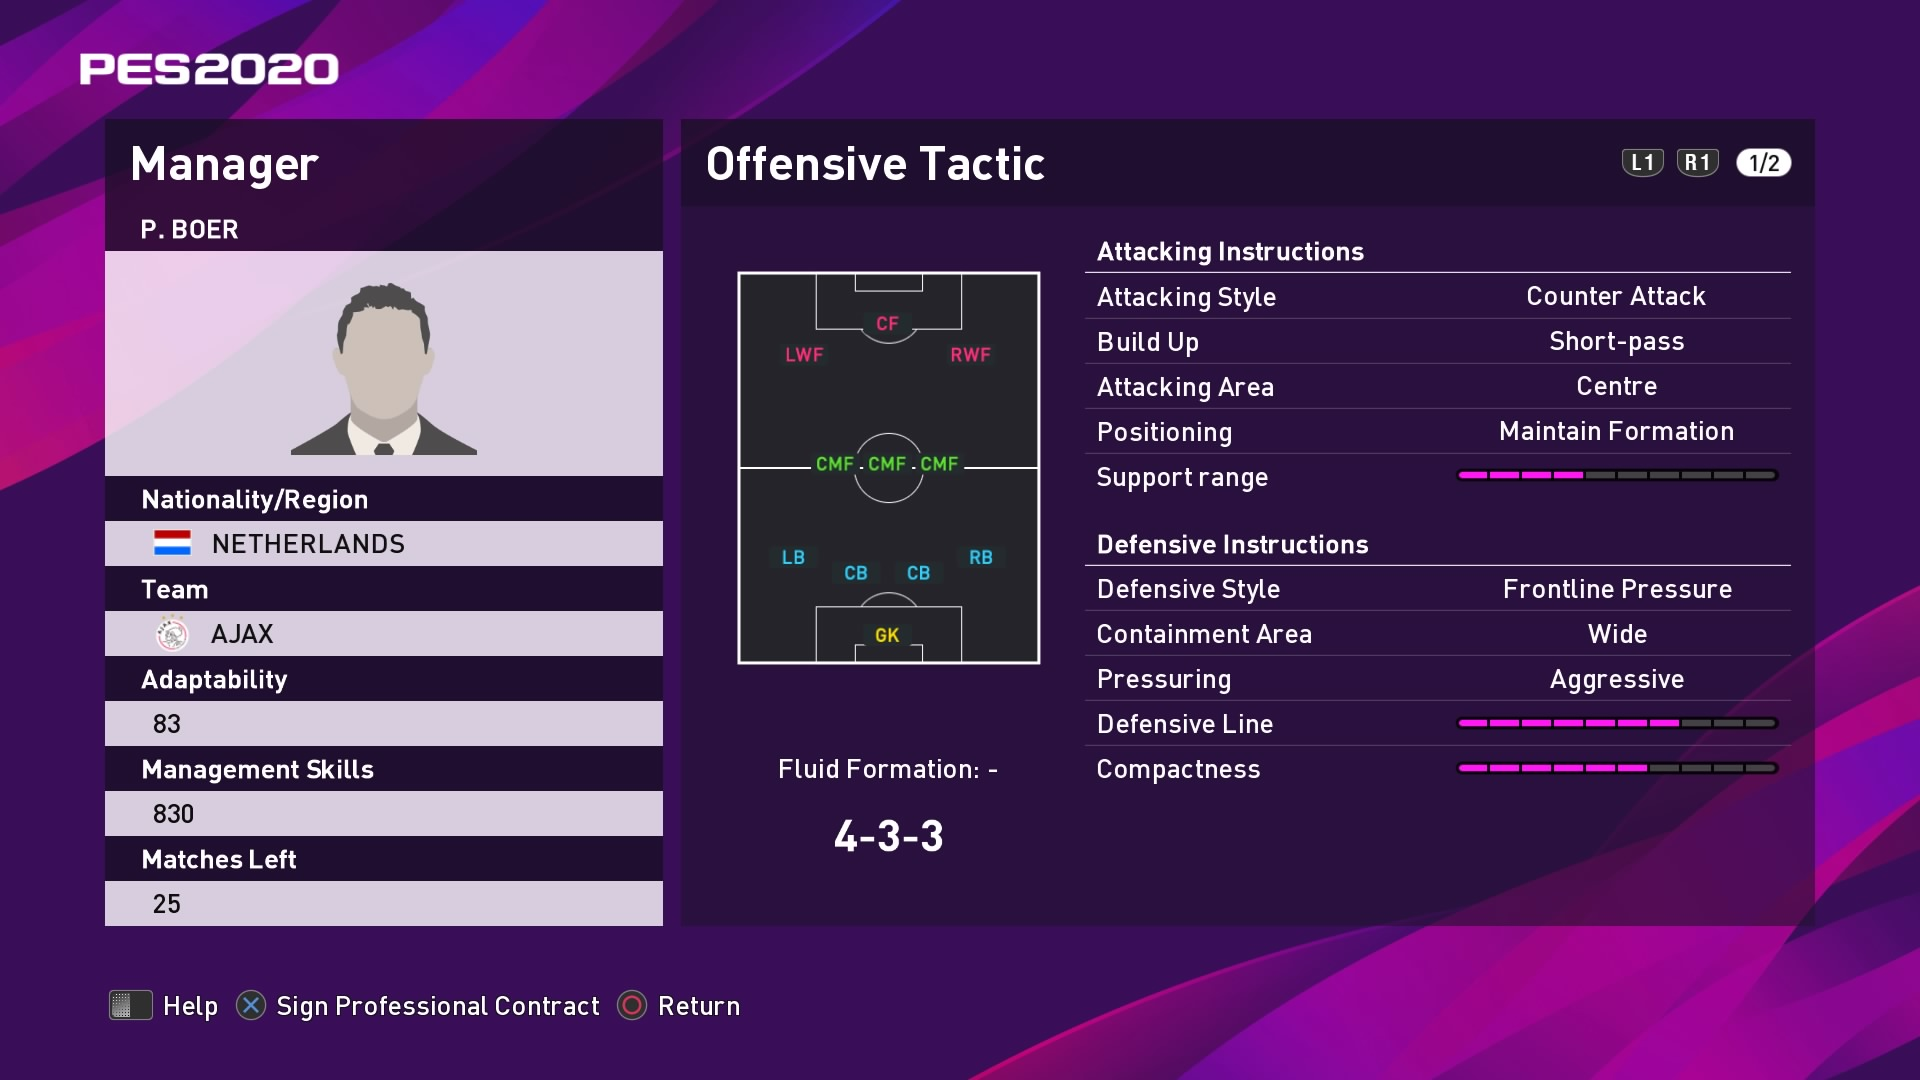 P. Boer (3) (Erik ten Hag) Offensive Tactic in PES 2020 myClub